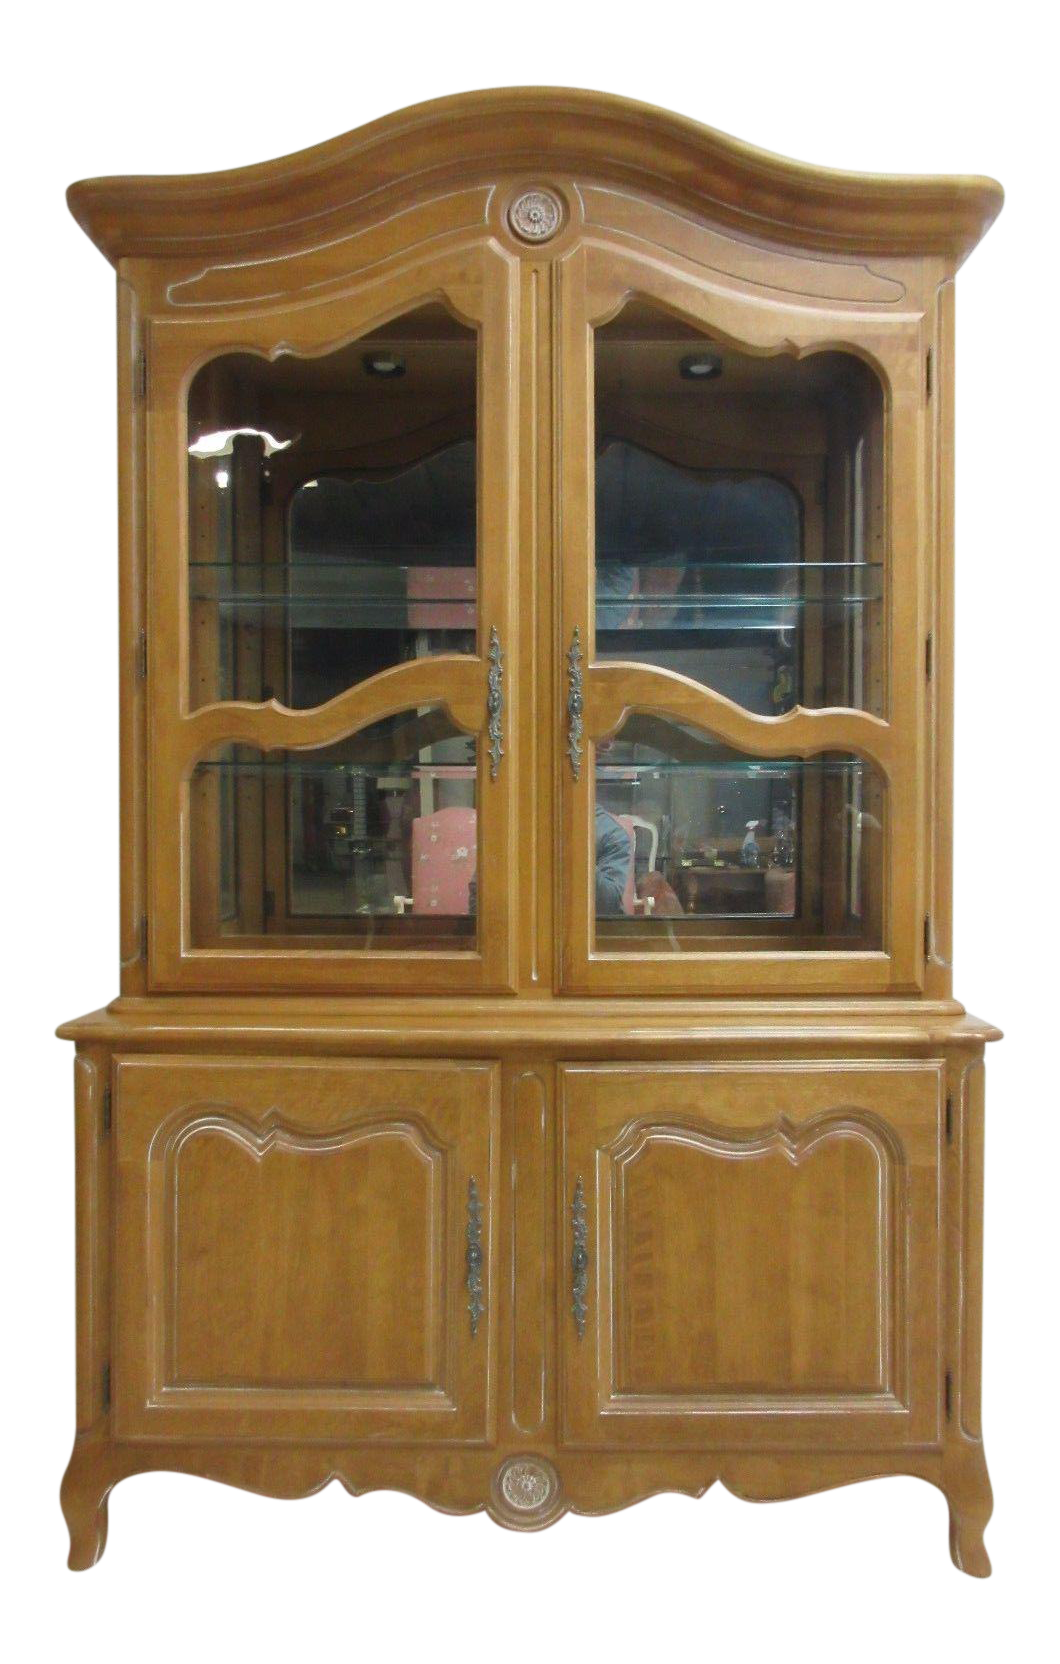 Perfect Ethan Allen Country French Bisque China Cabinet Hutch Curio Display